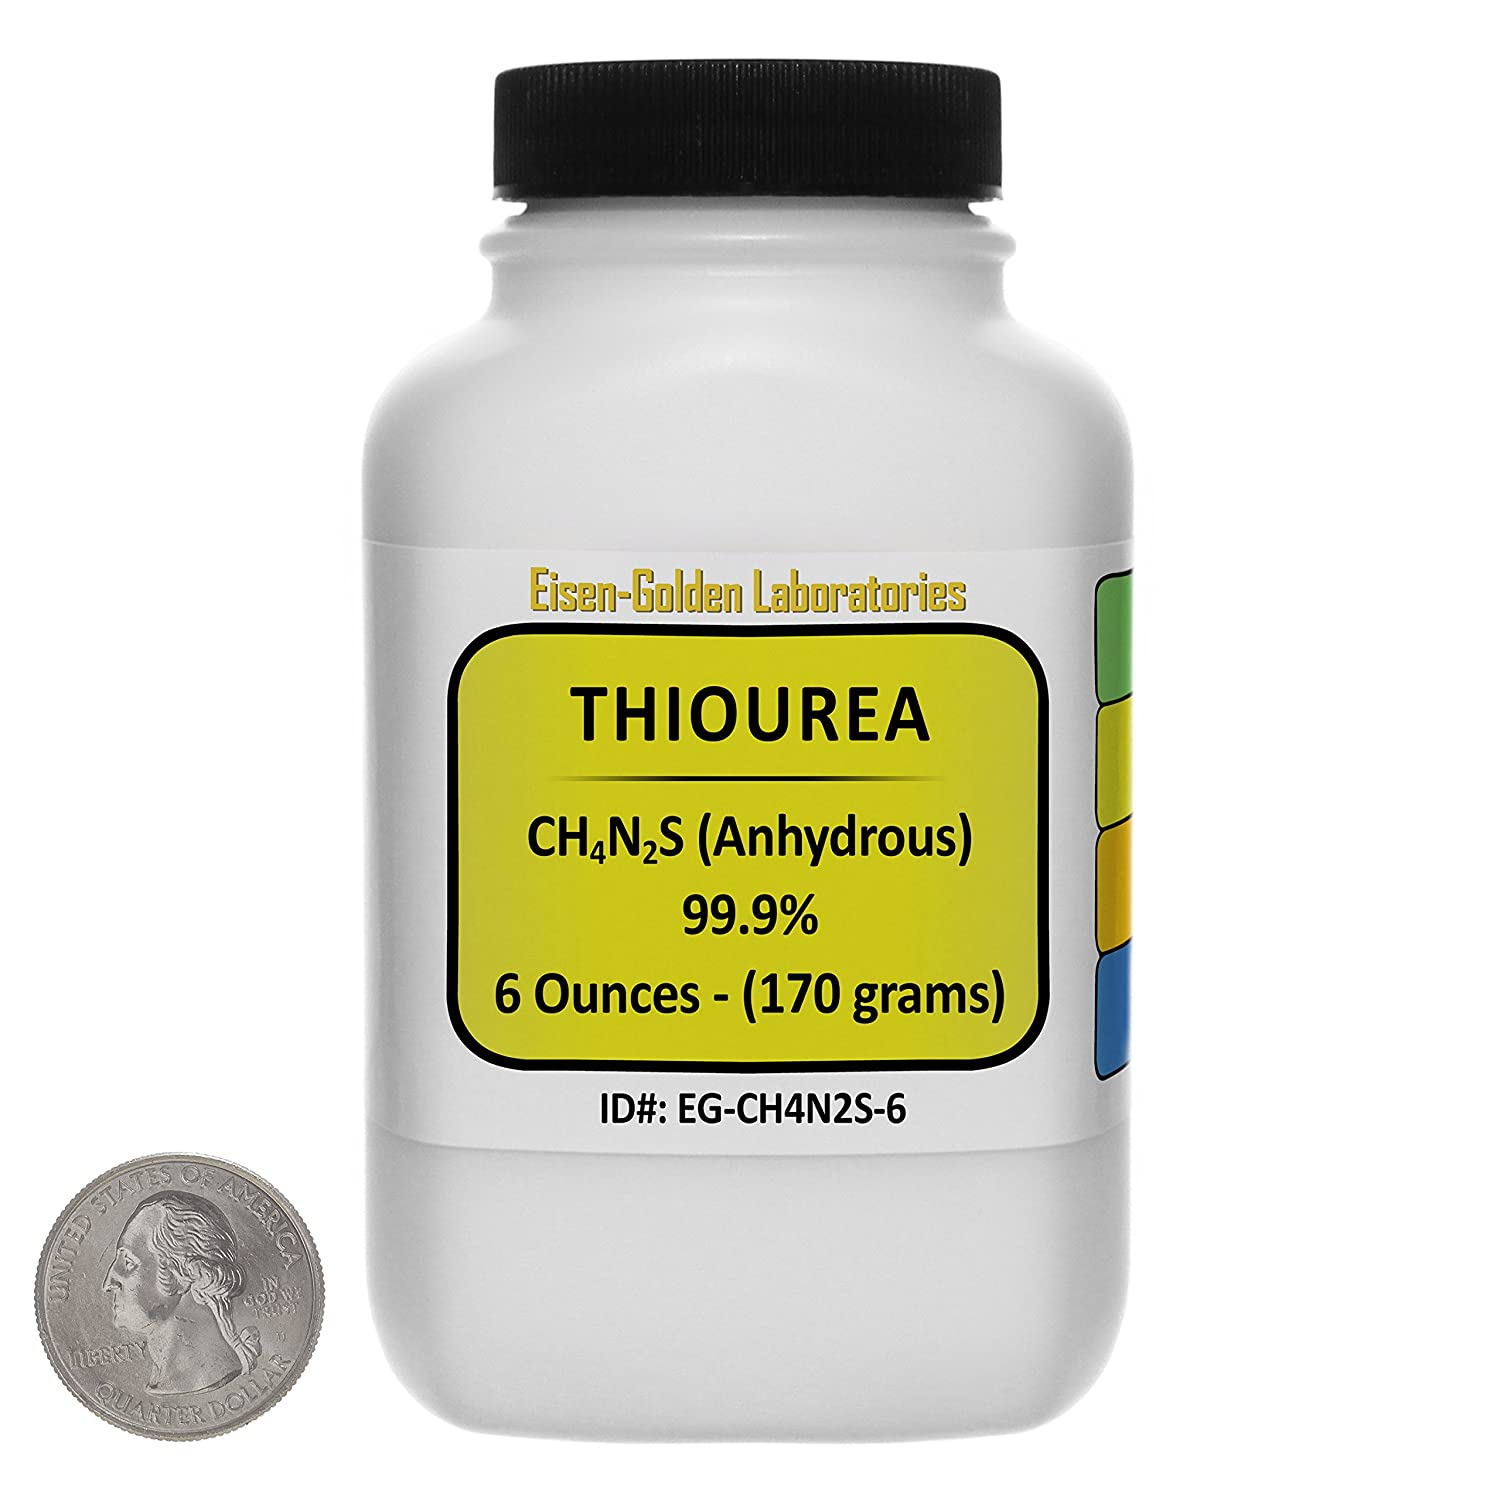 Thiourea [SC(NH2)2] 99.9% ACS Grade Crystals 6 Oz in a Space-Saver Bottle USA Eisen-Golden Laboratories 4336975237